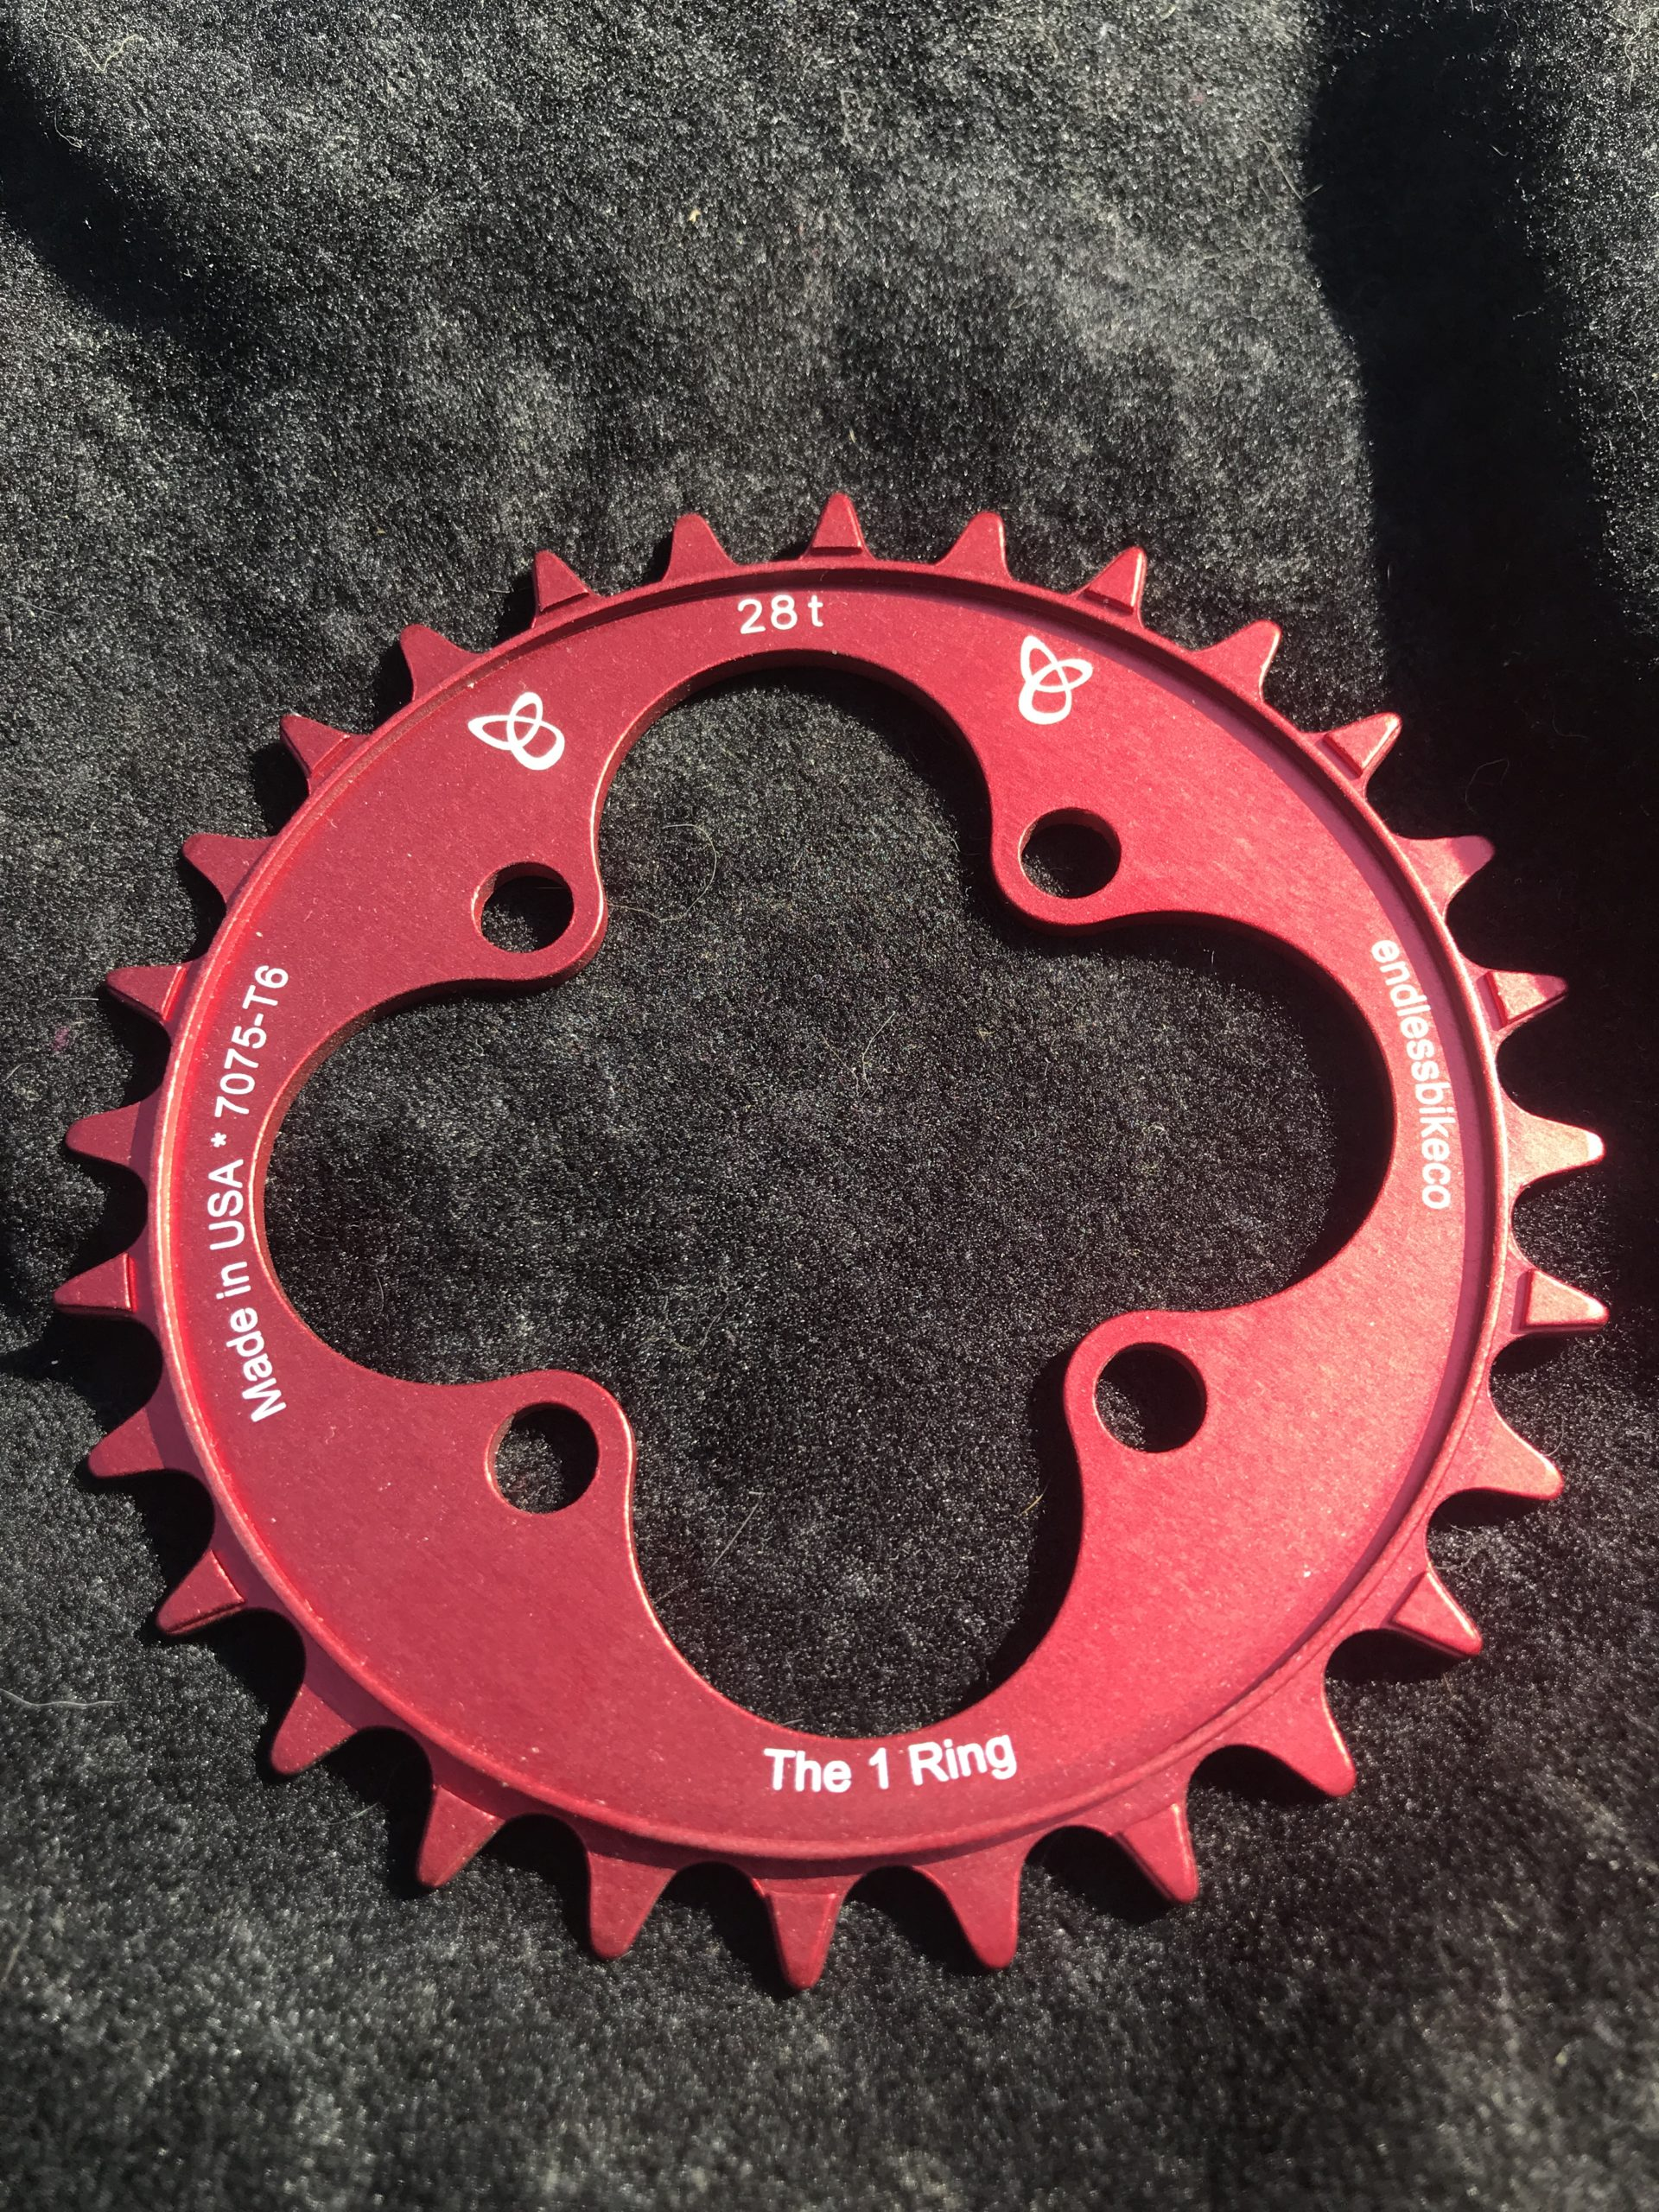 28t chainring red